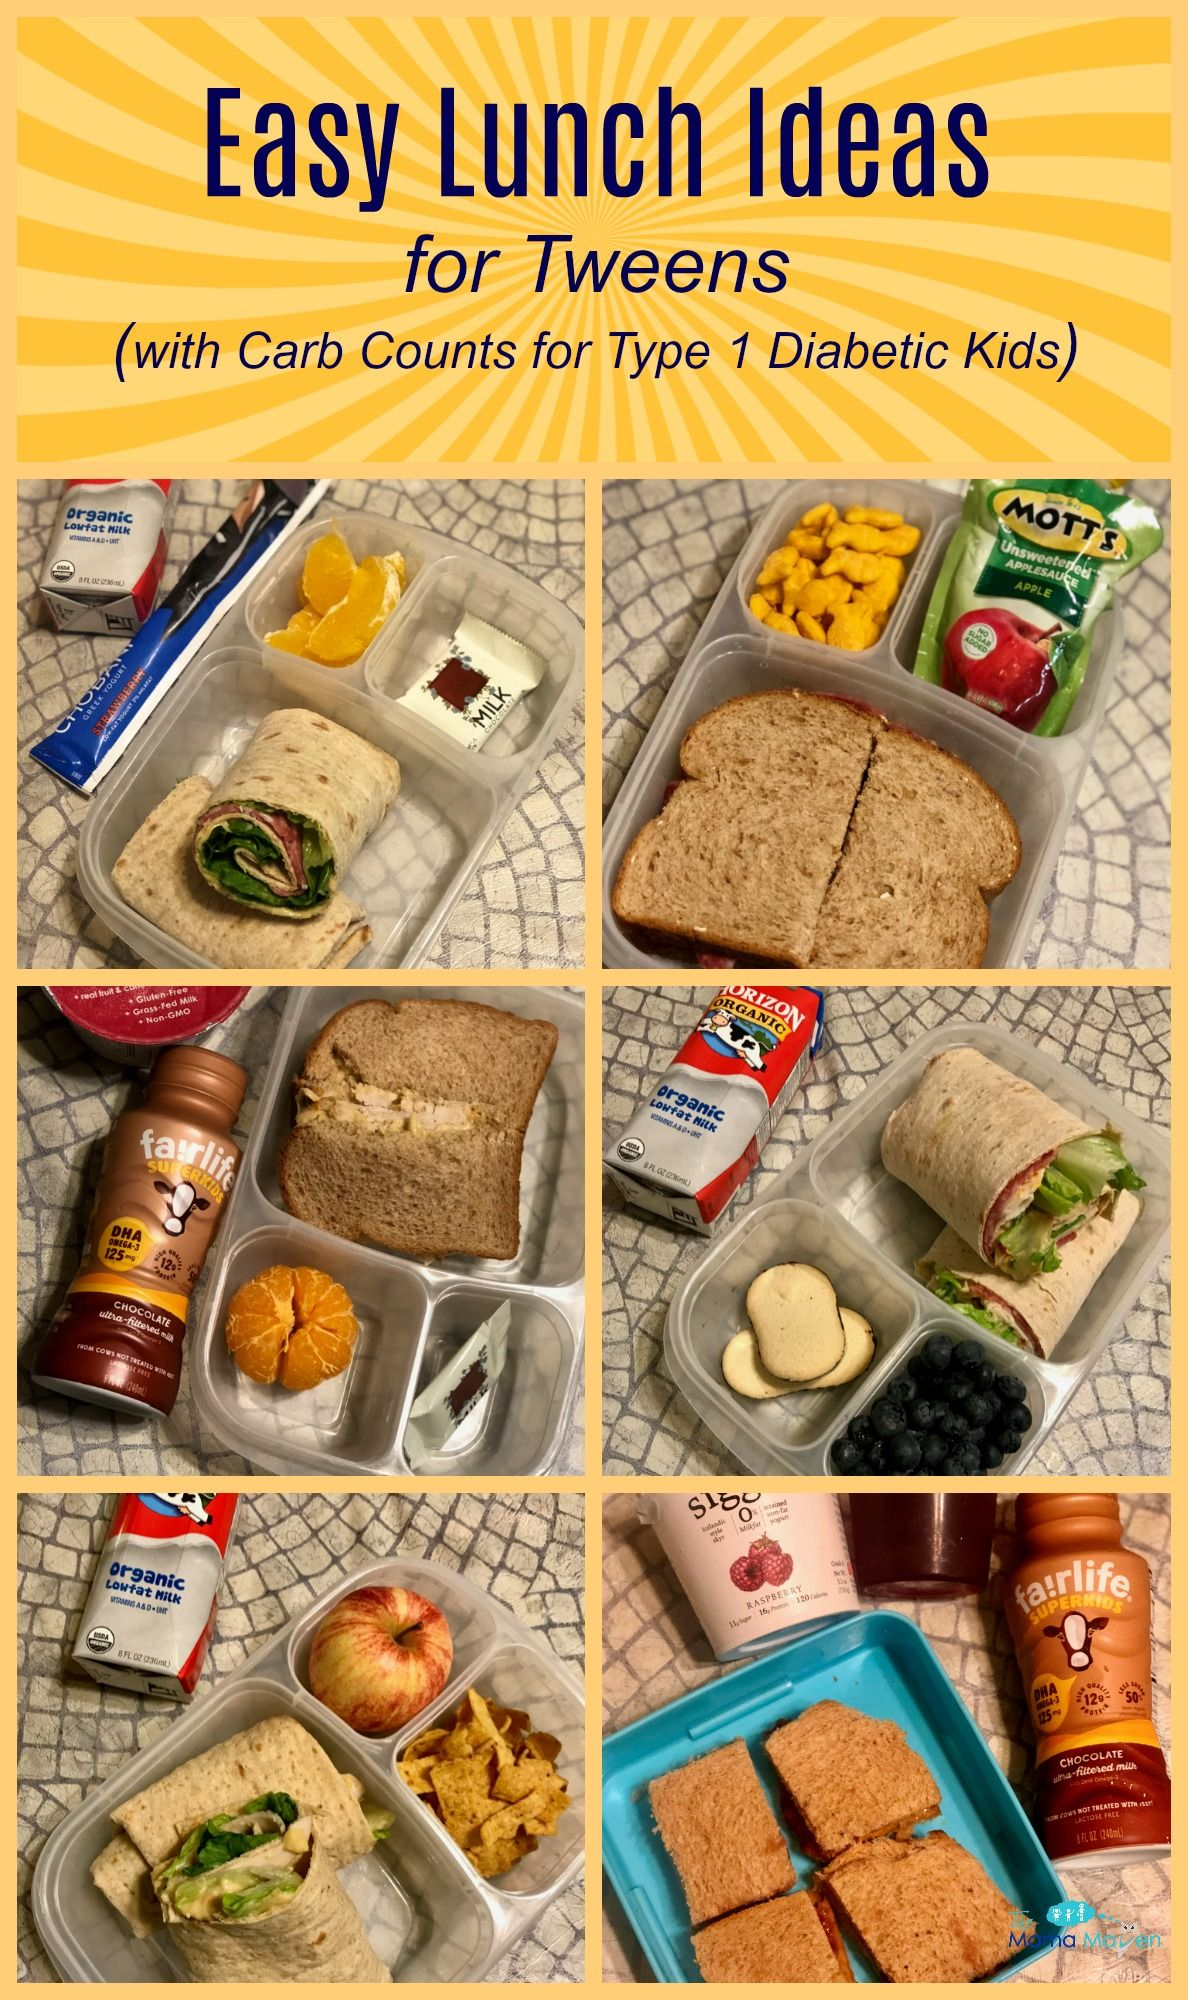 Easy Lunch Ideas for Tweens (with Carb Counts for Type 1 Diabetic Kids)